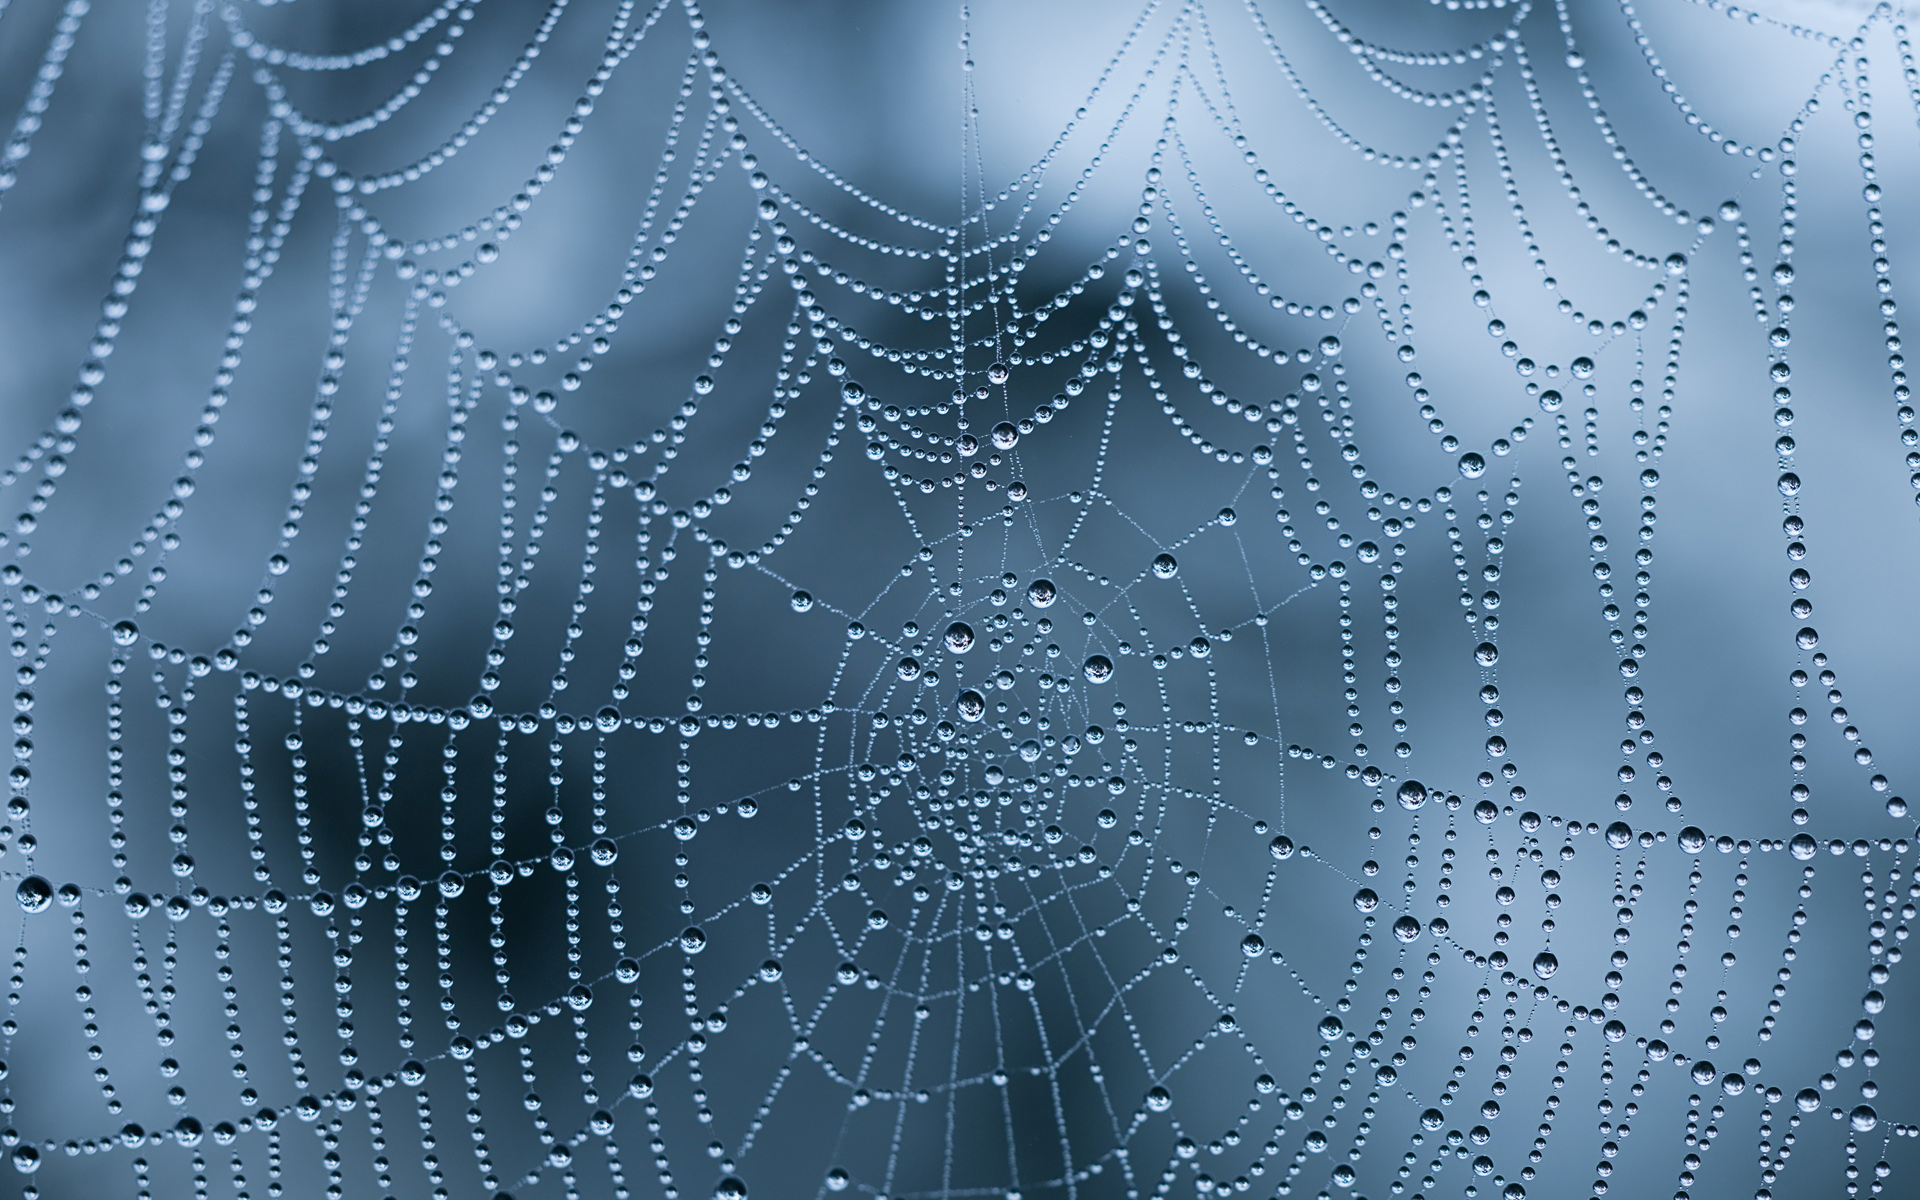 Spider Web Wallpapers Archives - HDWallSource.com